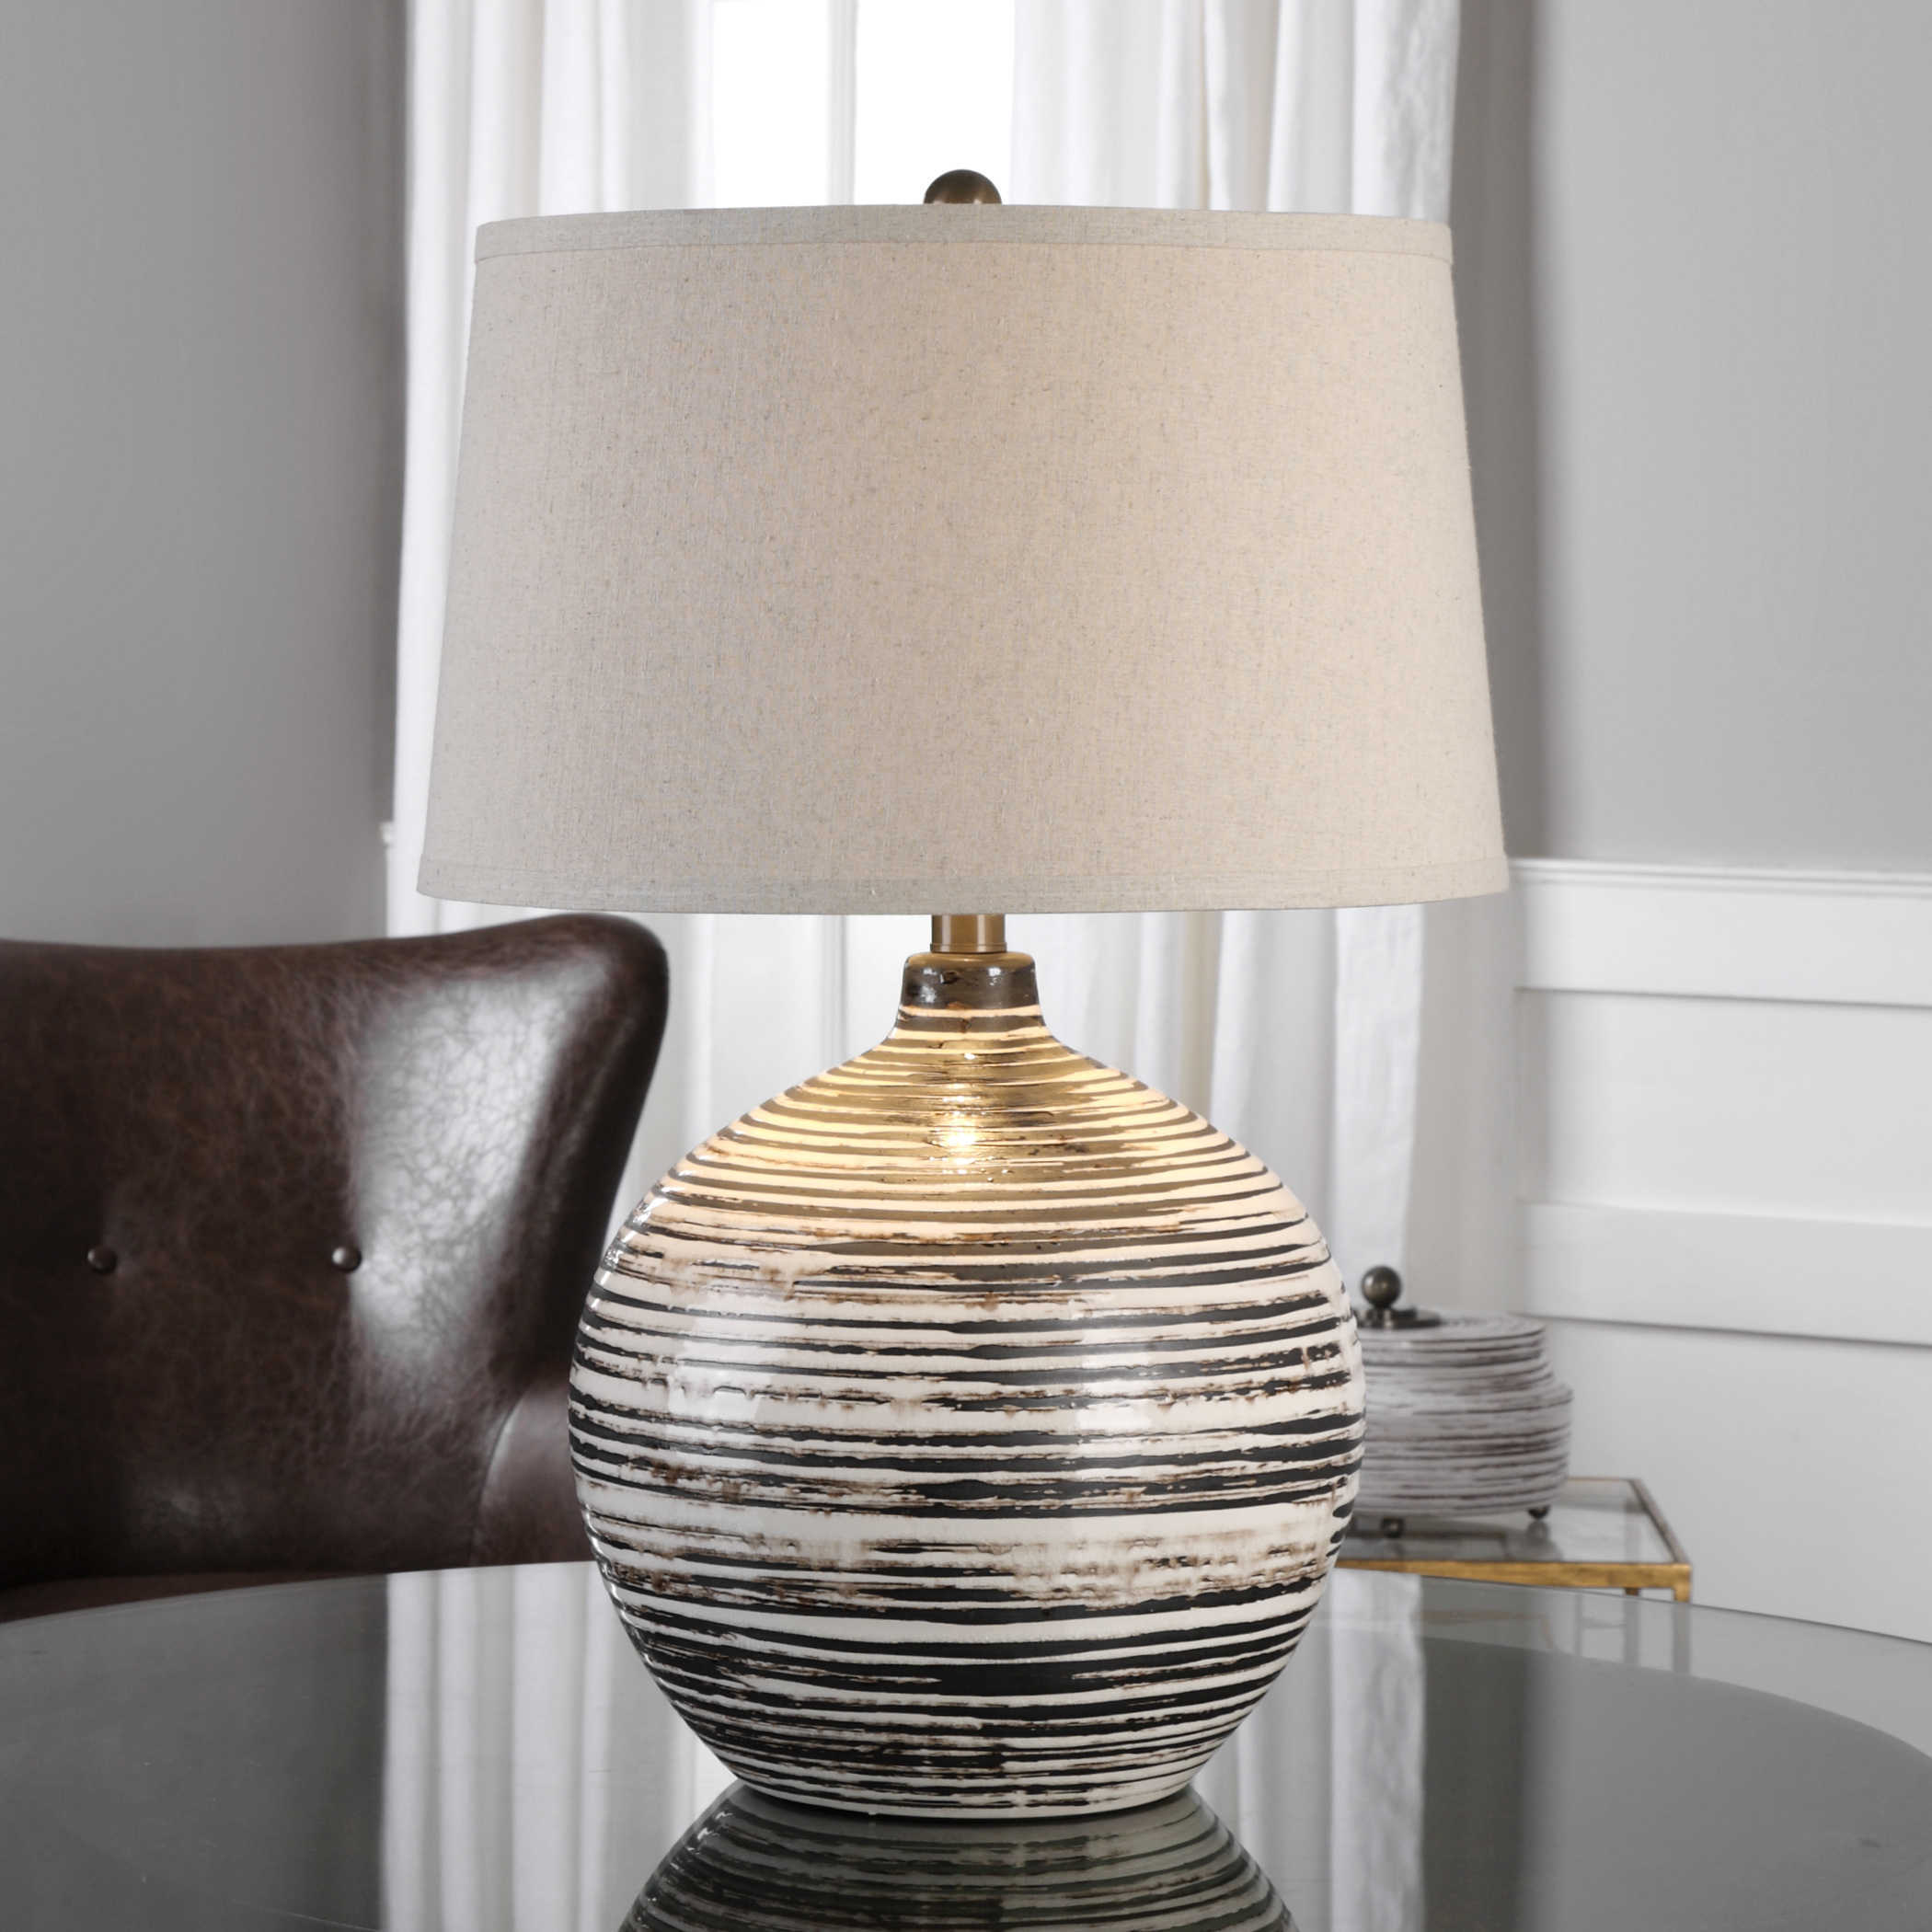 Bloxom Table Lamp Uttermost